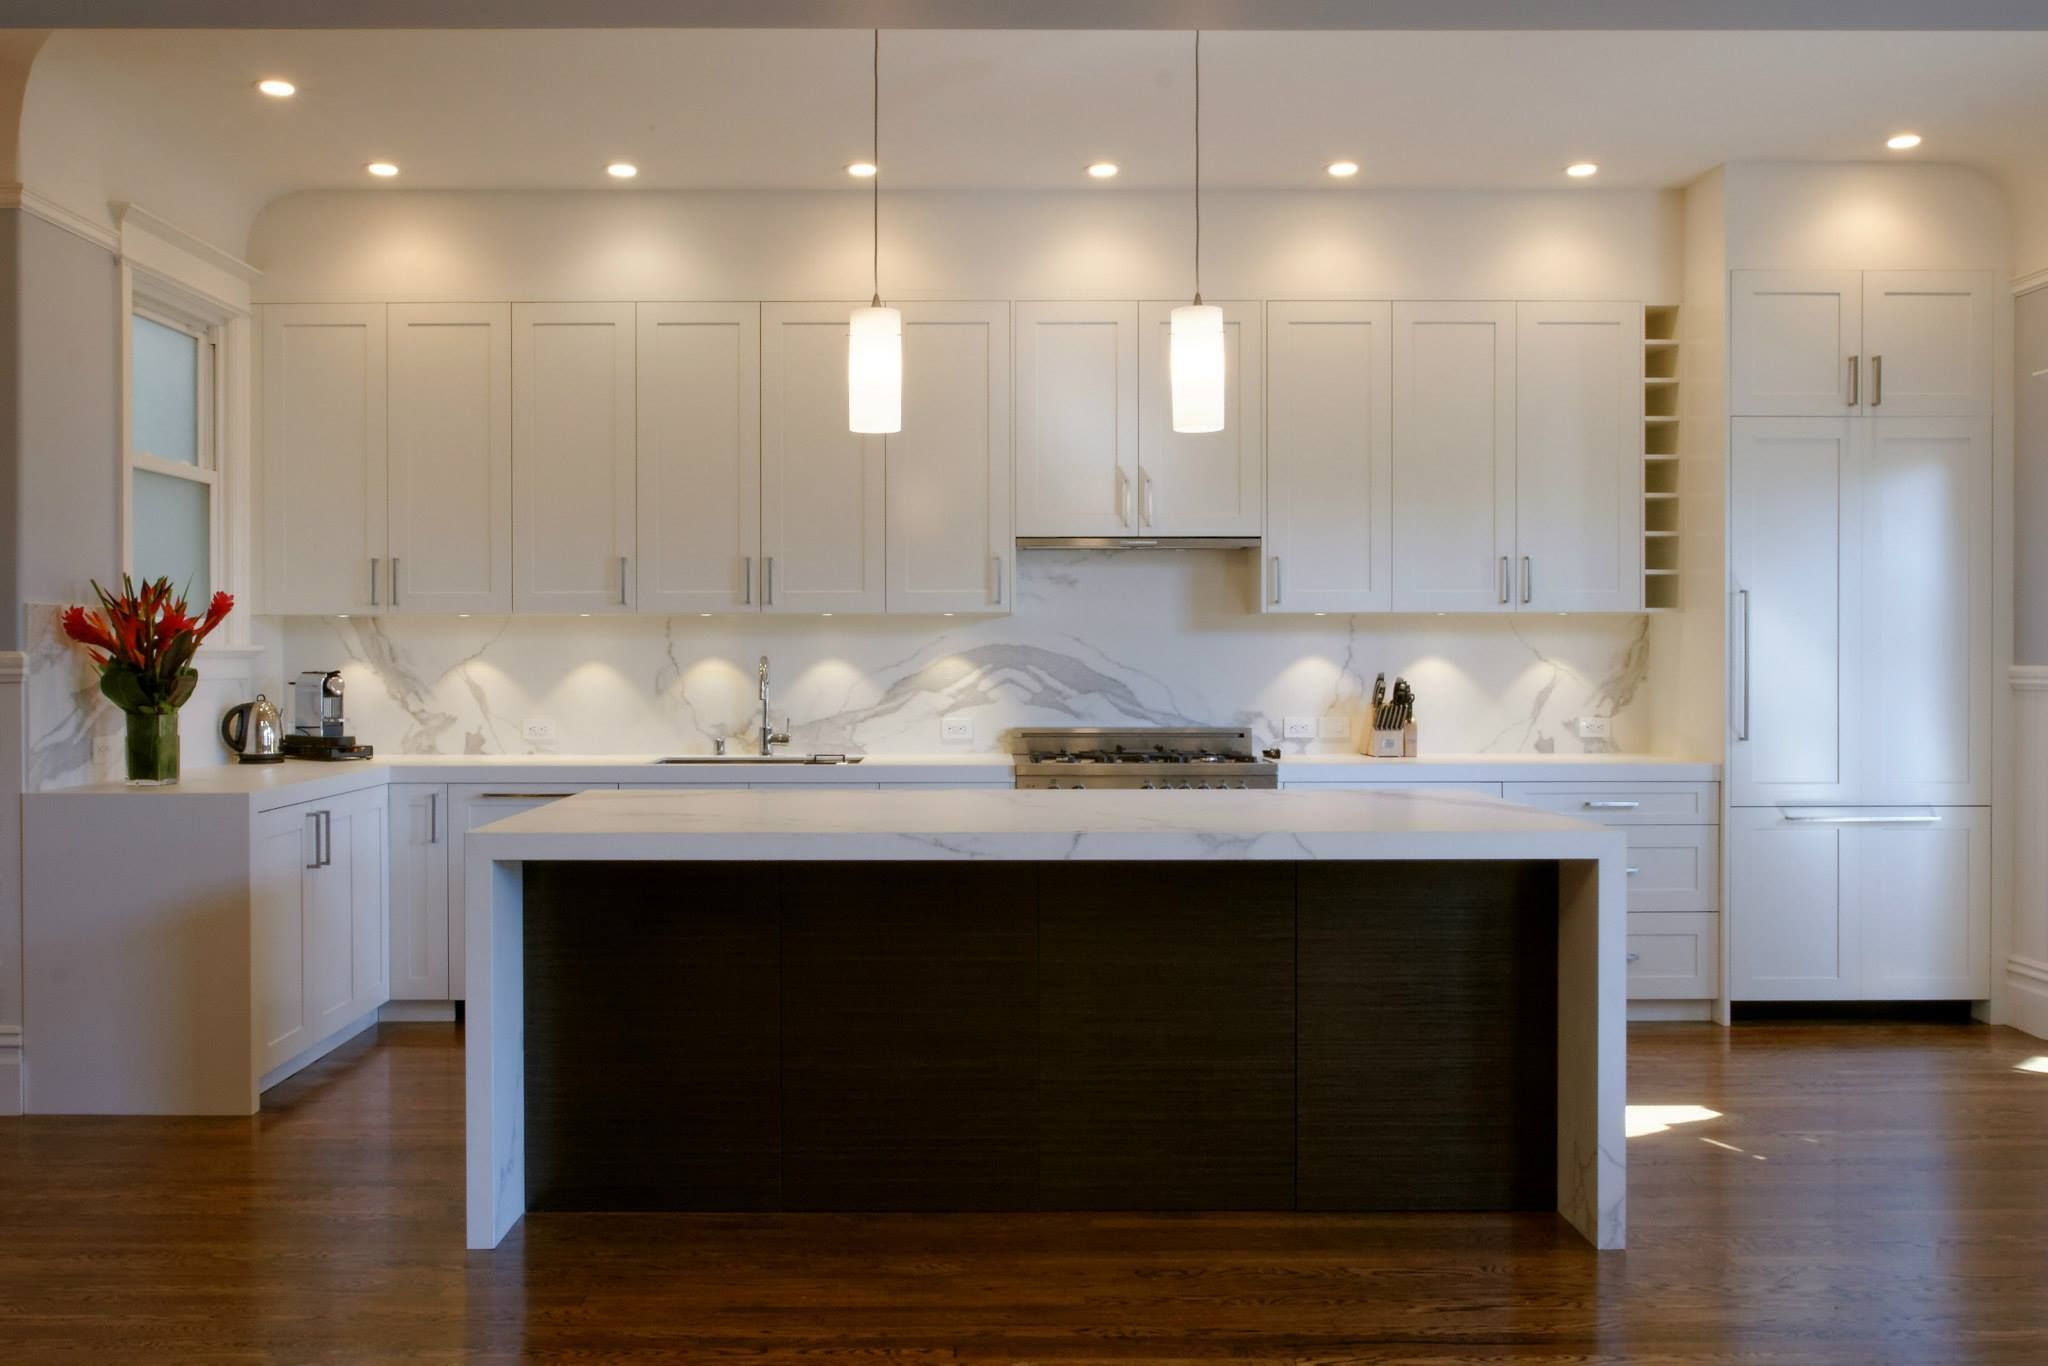 Modern Kitchen Colour Schemes Modern Kitchen Design Great Lighting With White And Brown Colour